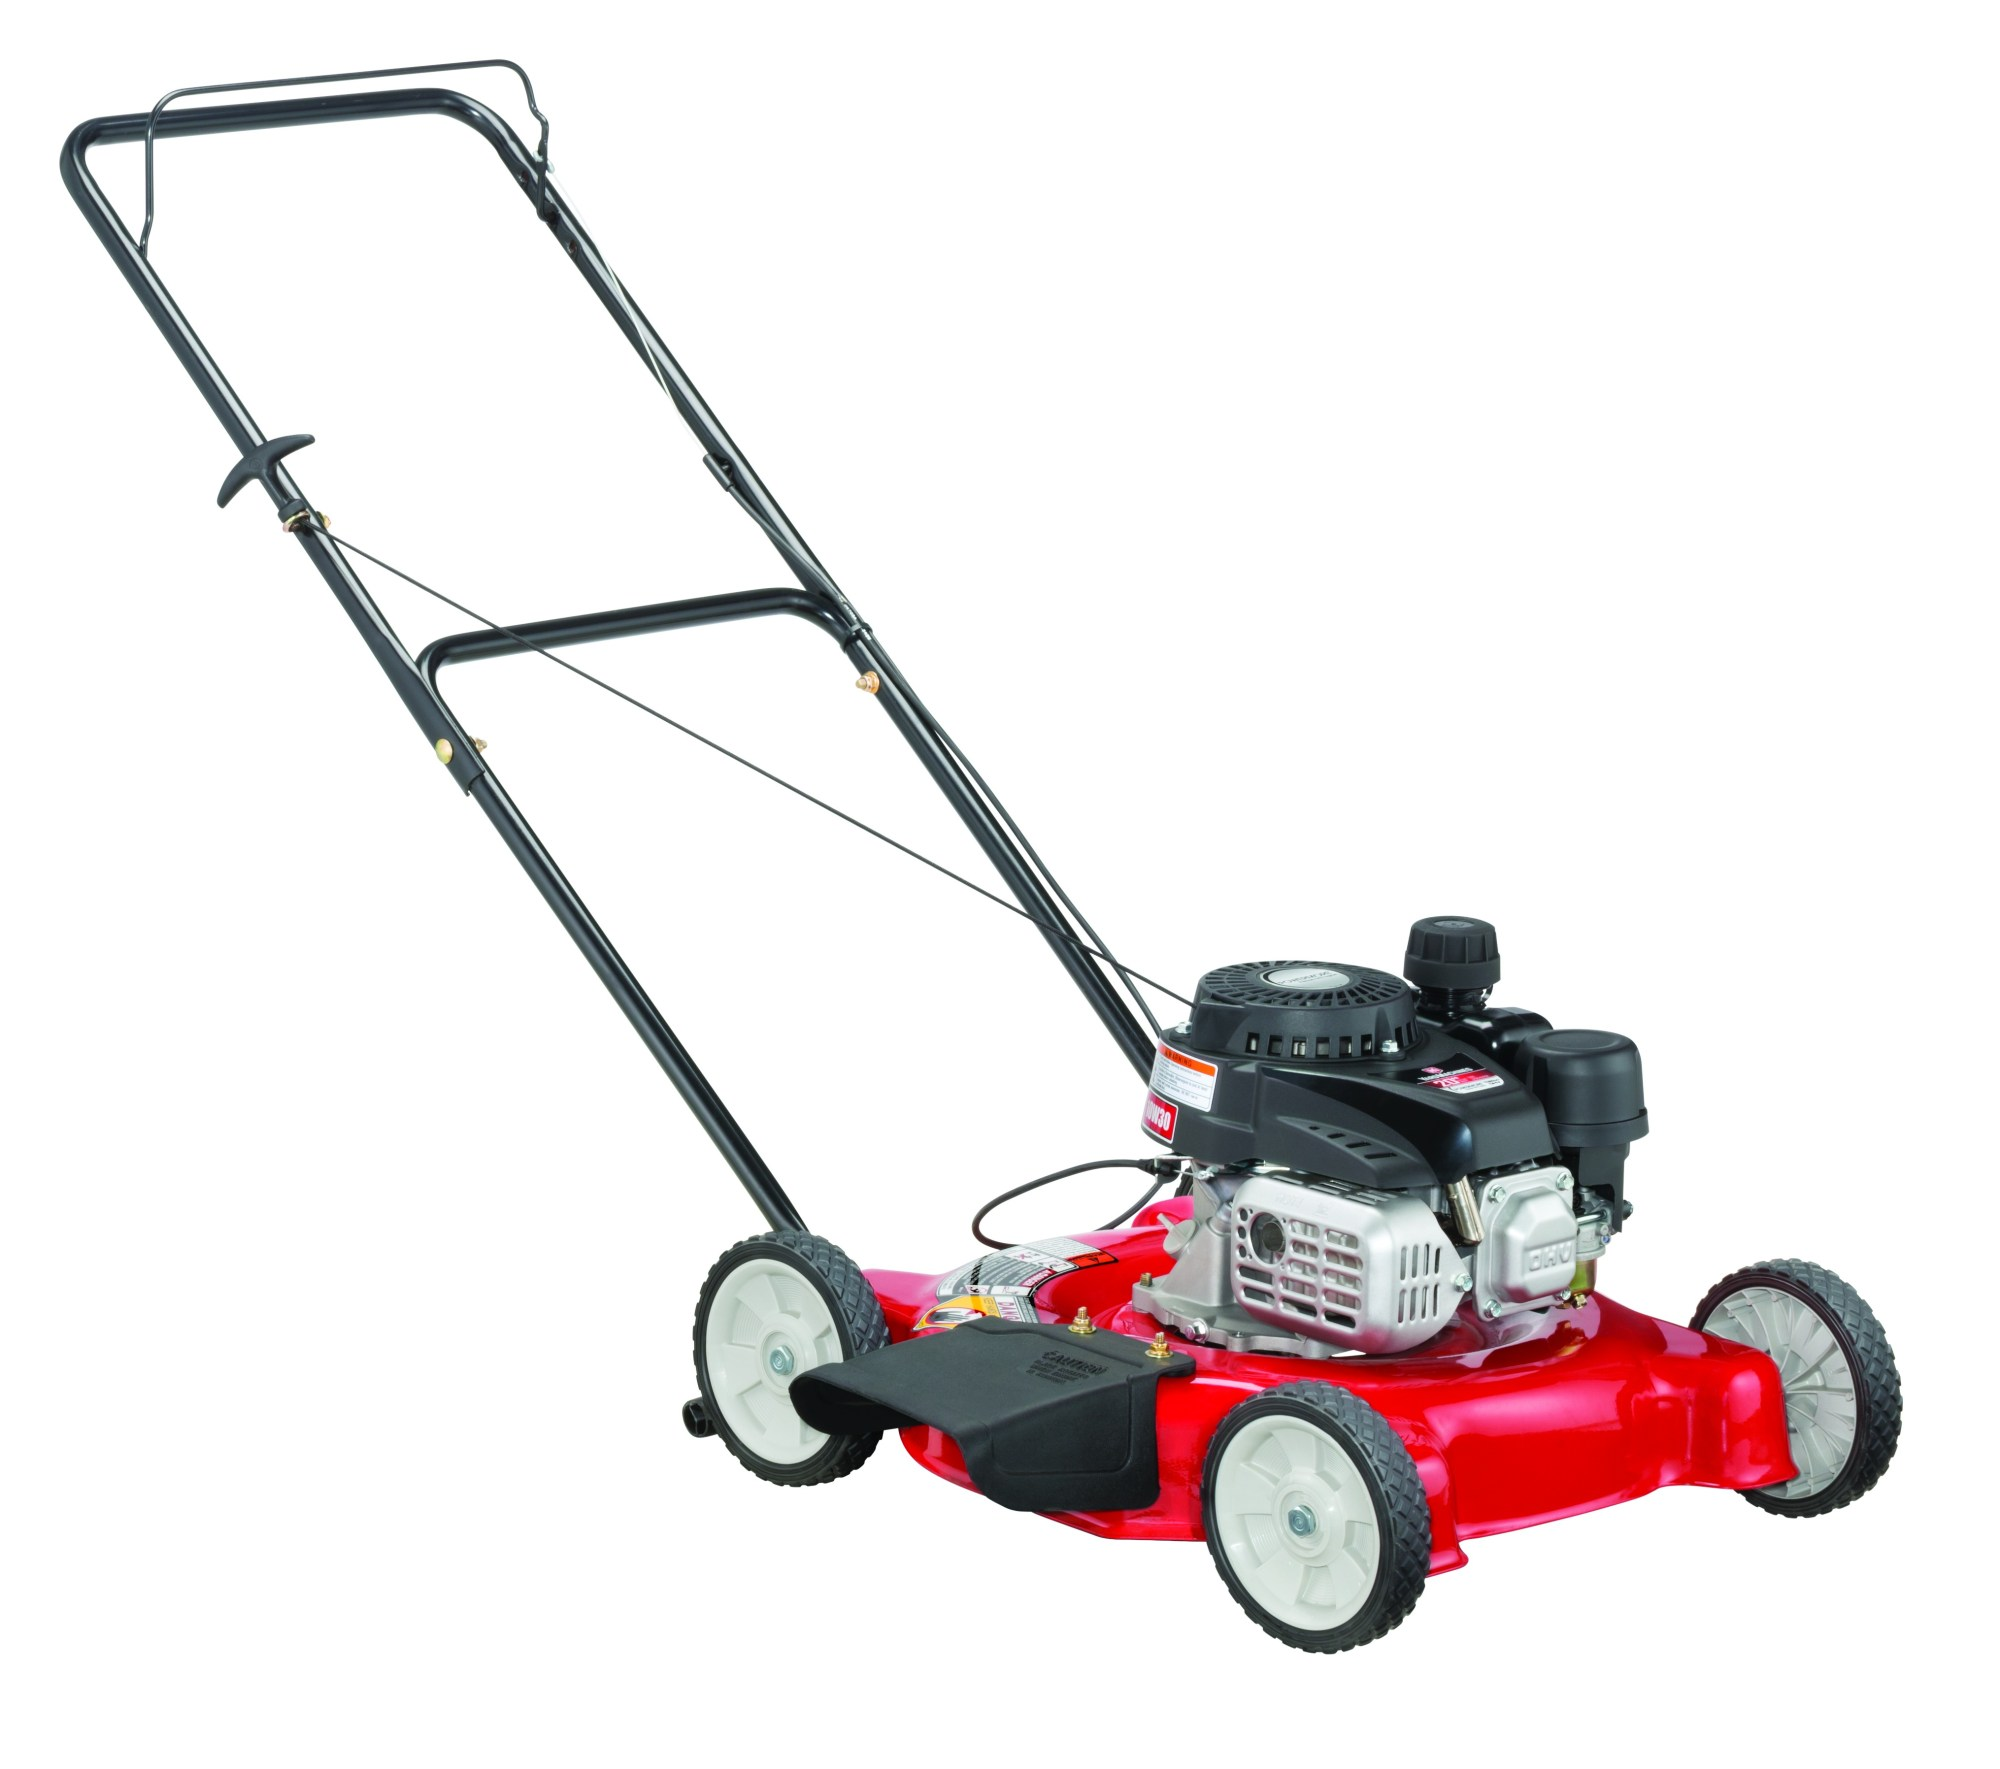 hight resolution of yard machines 20 gas push lawn mower with side discharge